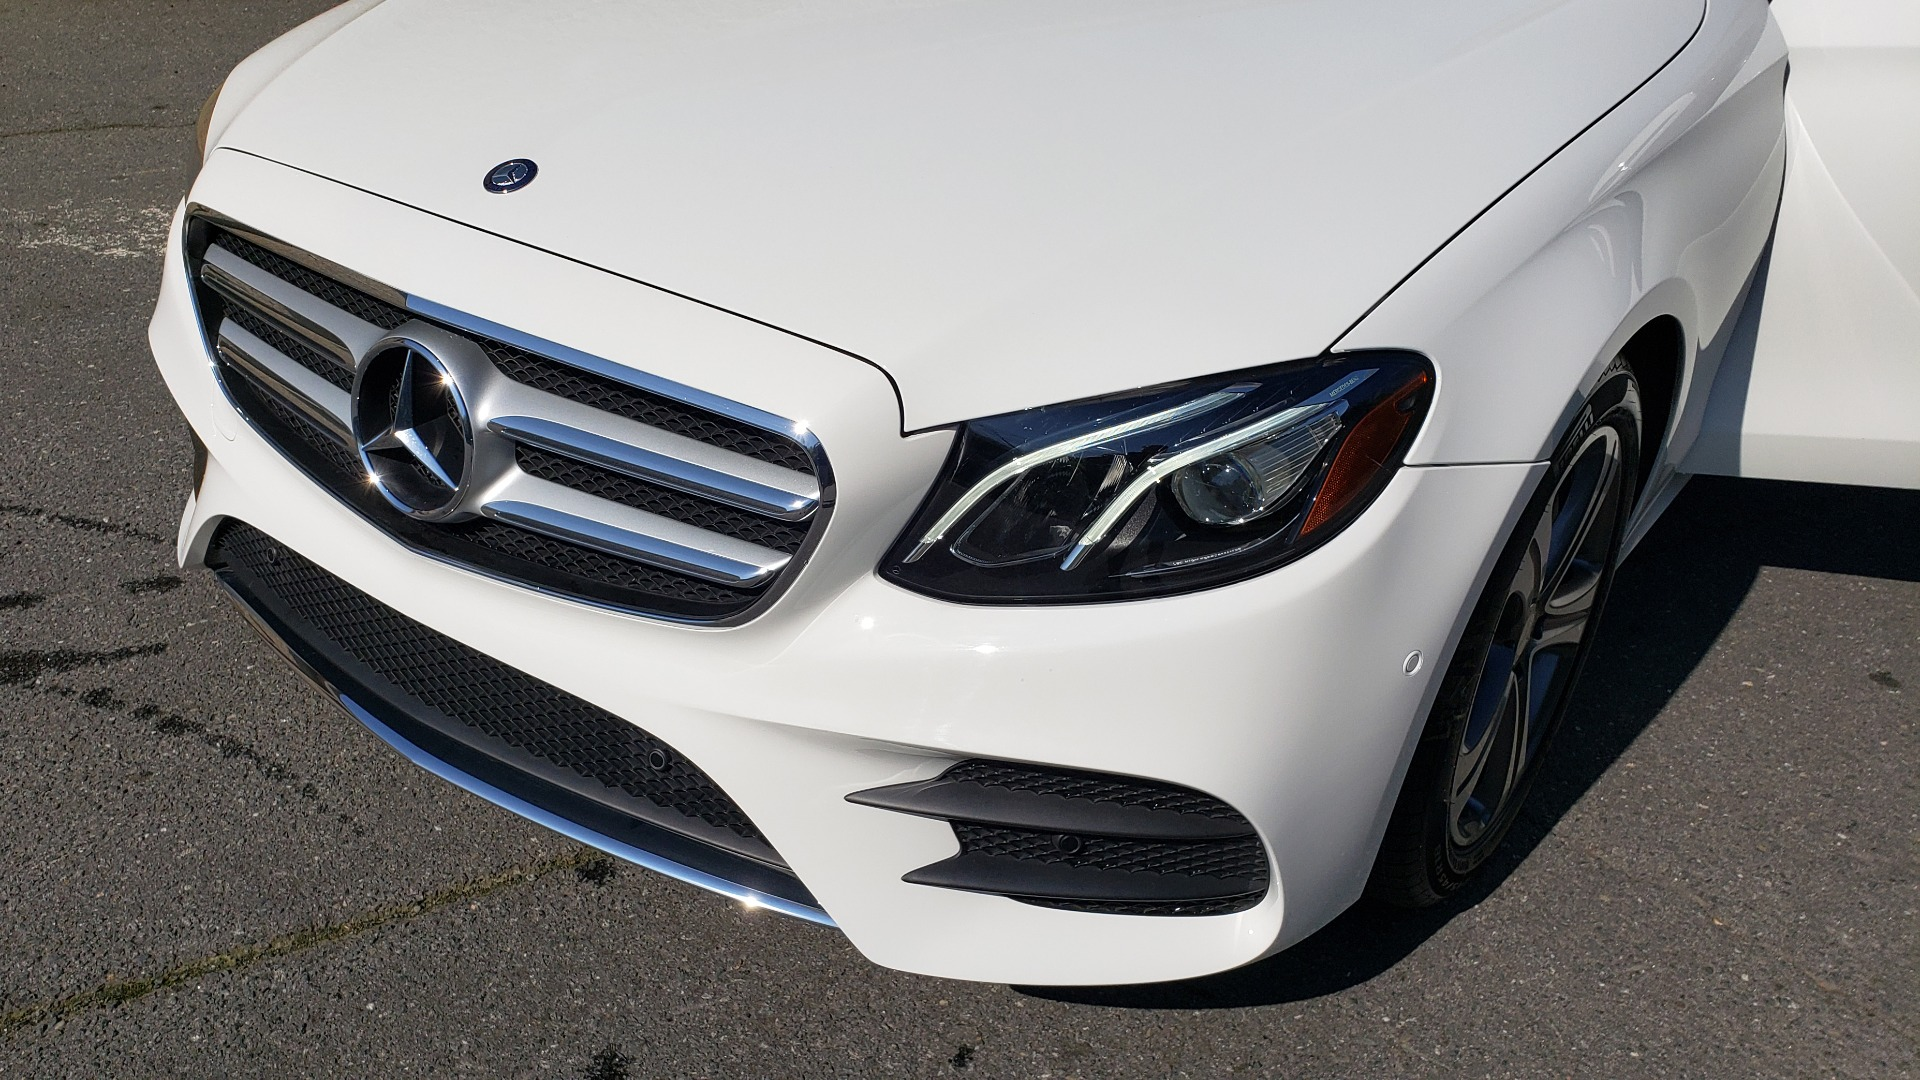 Used 2017 Mercedes-Benz E-Class E 300 PREMIUM / RWD / NAV / SNF / PARKING PILOT / REARVIEW / BURMESTER for sale Sold at Formula Imports in Charlotte NC 28227 23